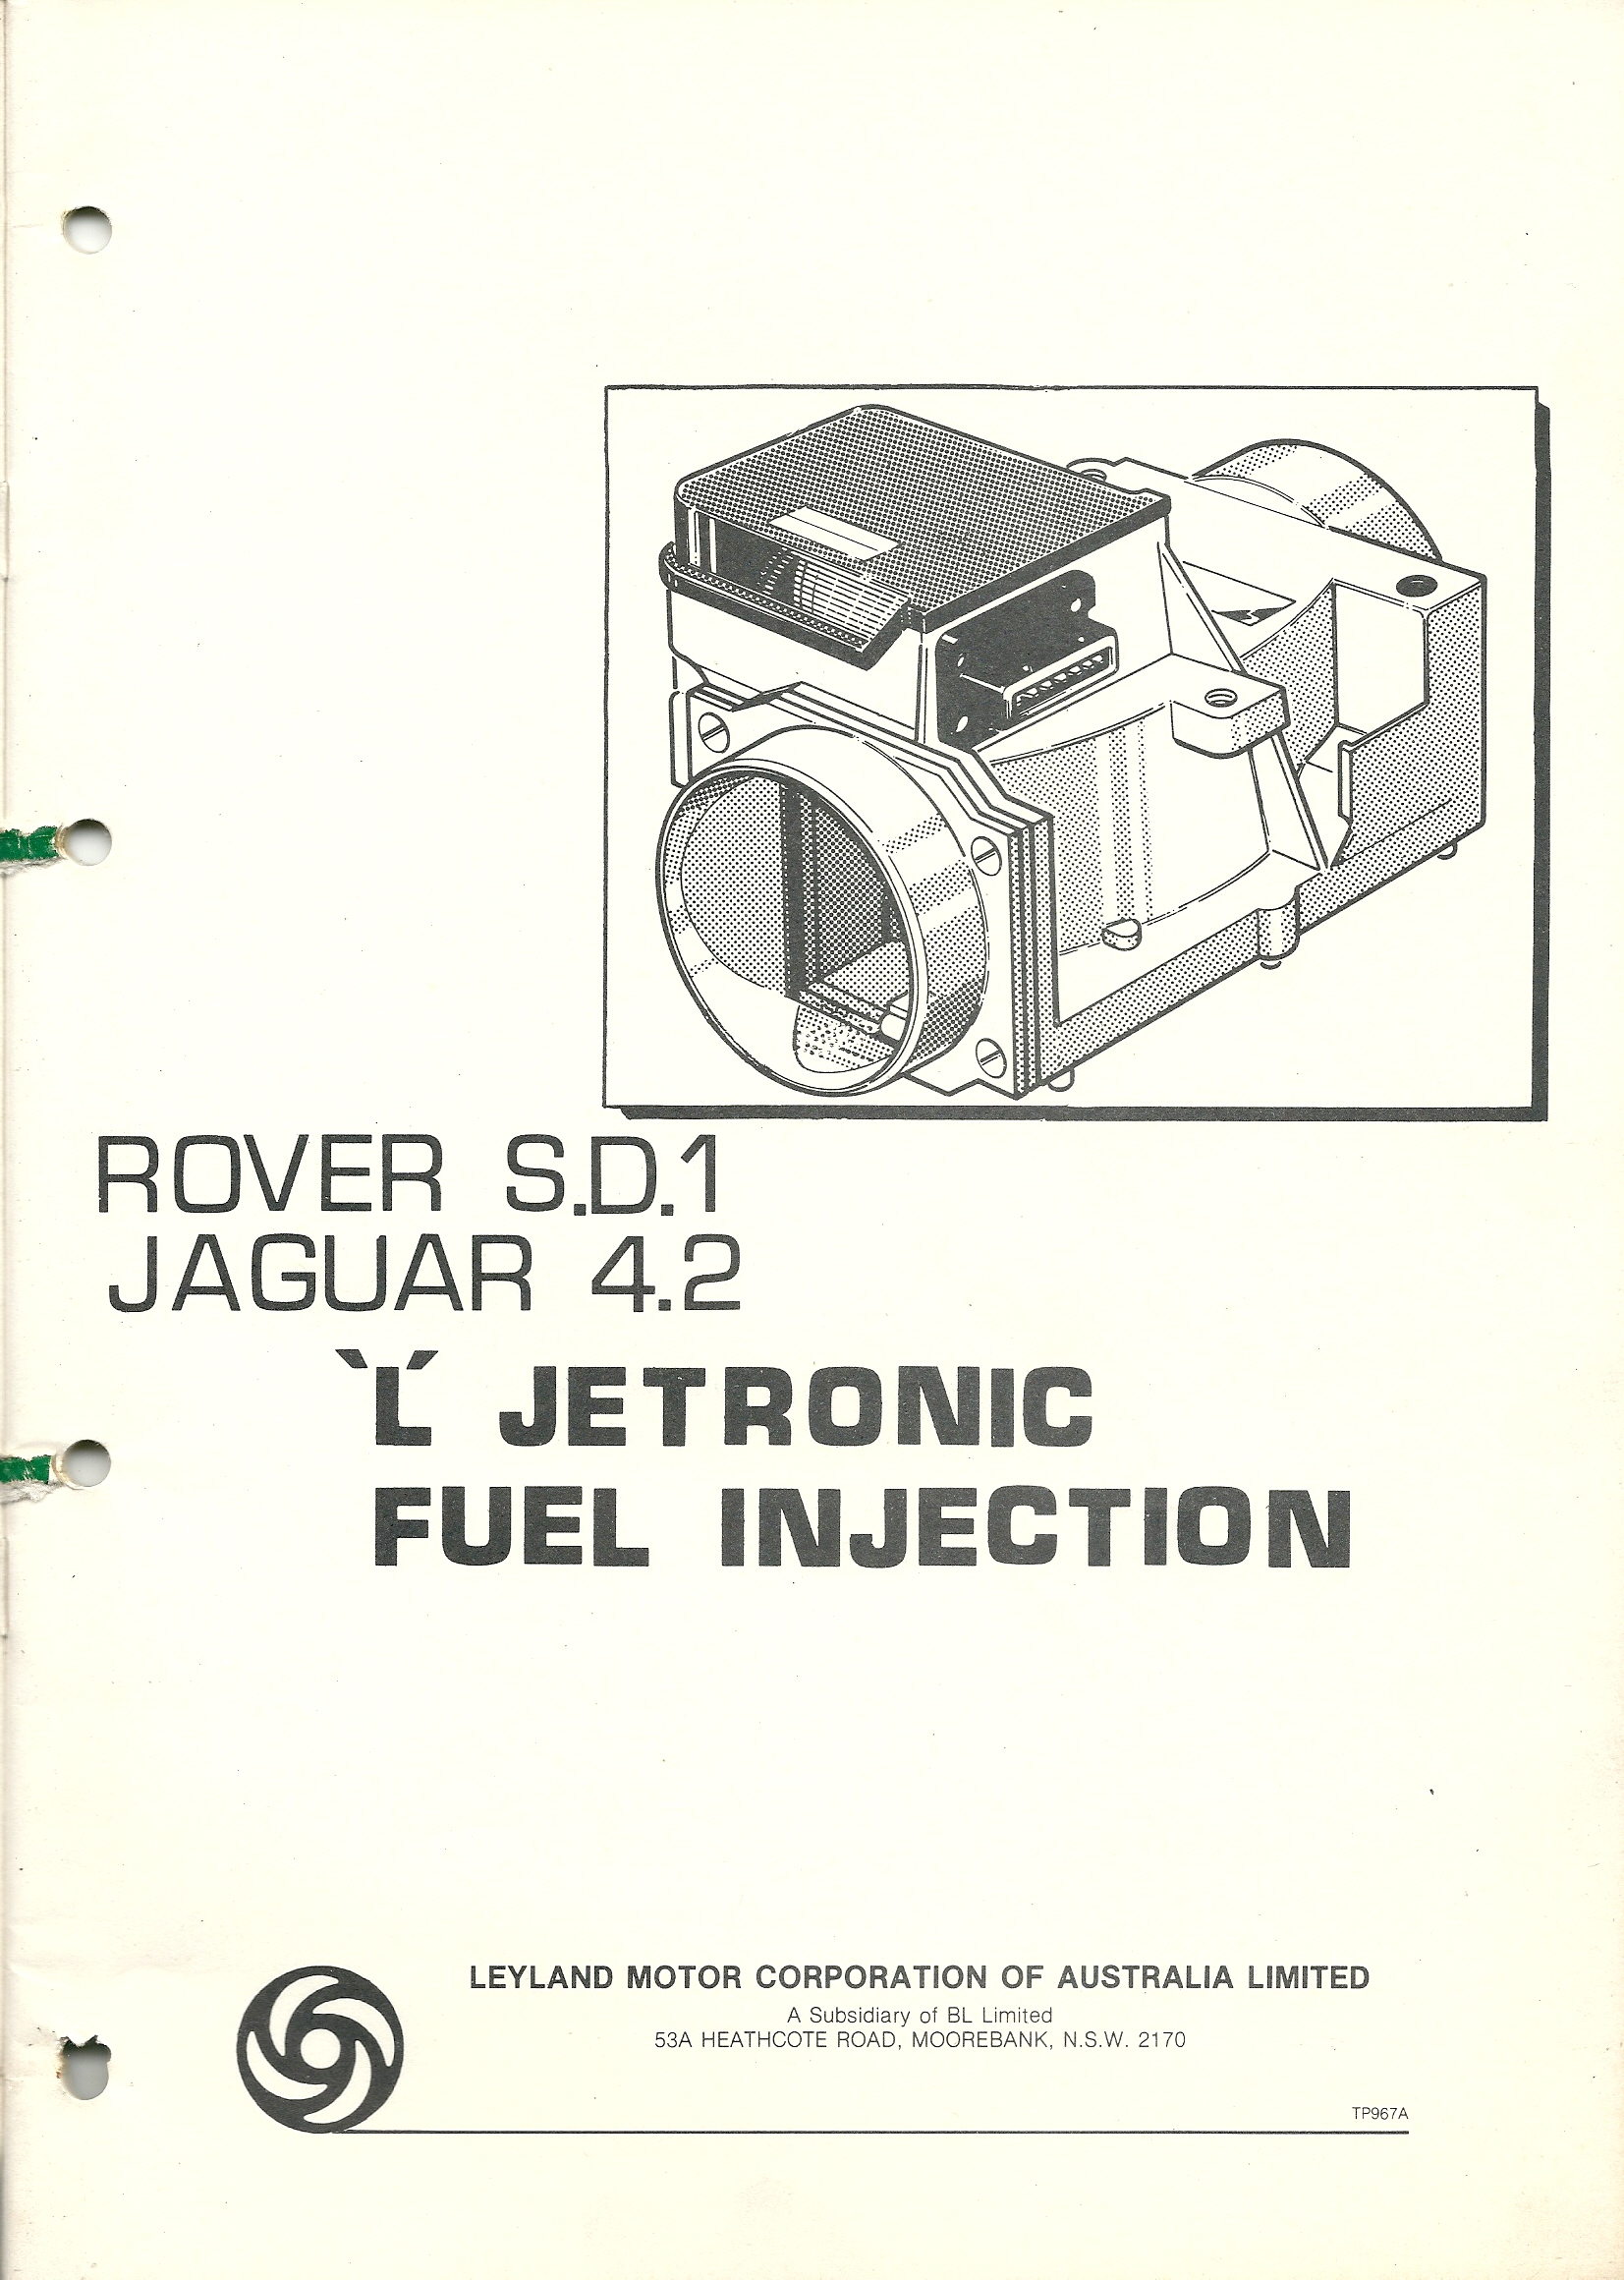 Workshop Manuals Rover Sd1 Australia Wiring Library Diagram Lug Indoor Main Br24lsp70 Dsc 0105 Jaguar 42 L Jetronic Fuel Injection Manual 1981 Leyland